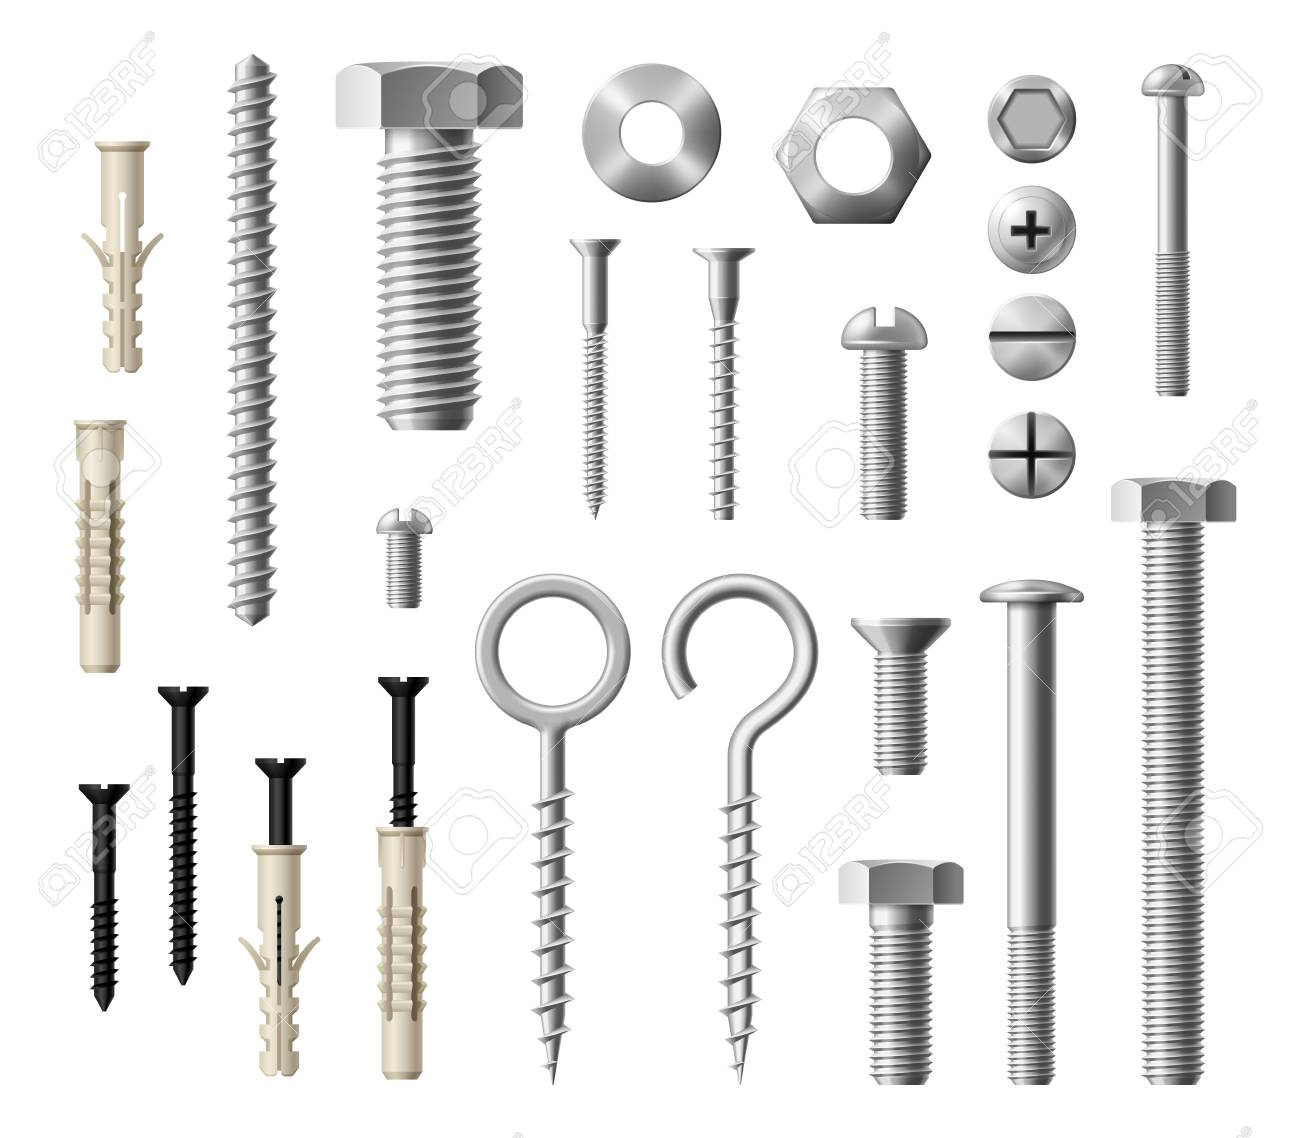 How Hdg Hex Cap Screws can Save You Time, Stress, and Money.